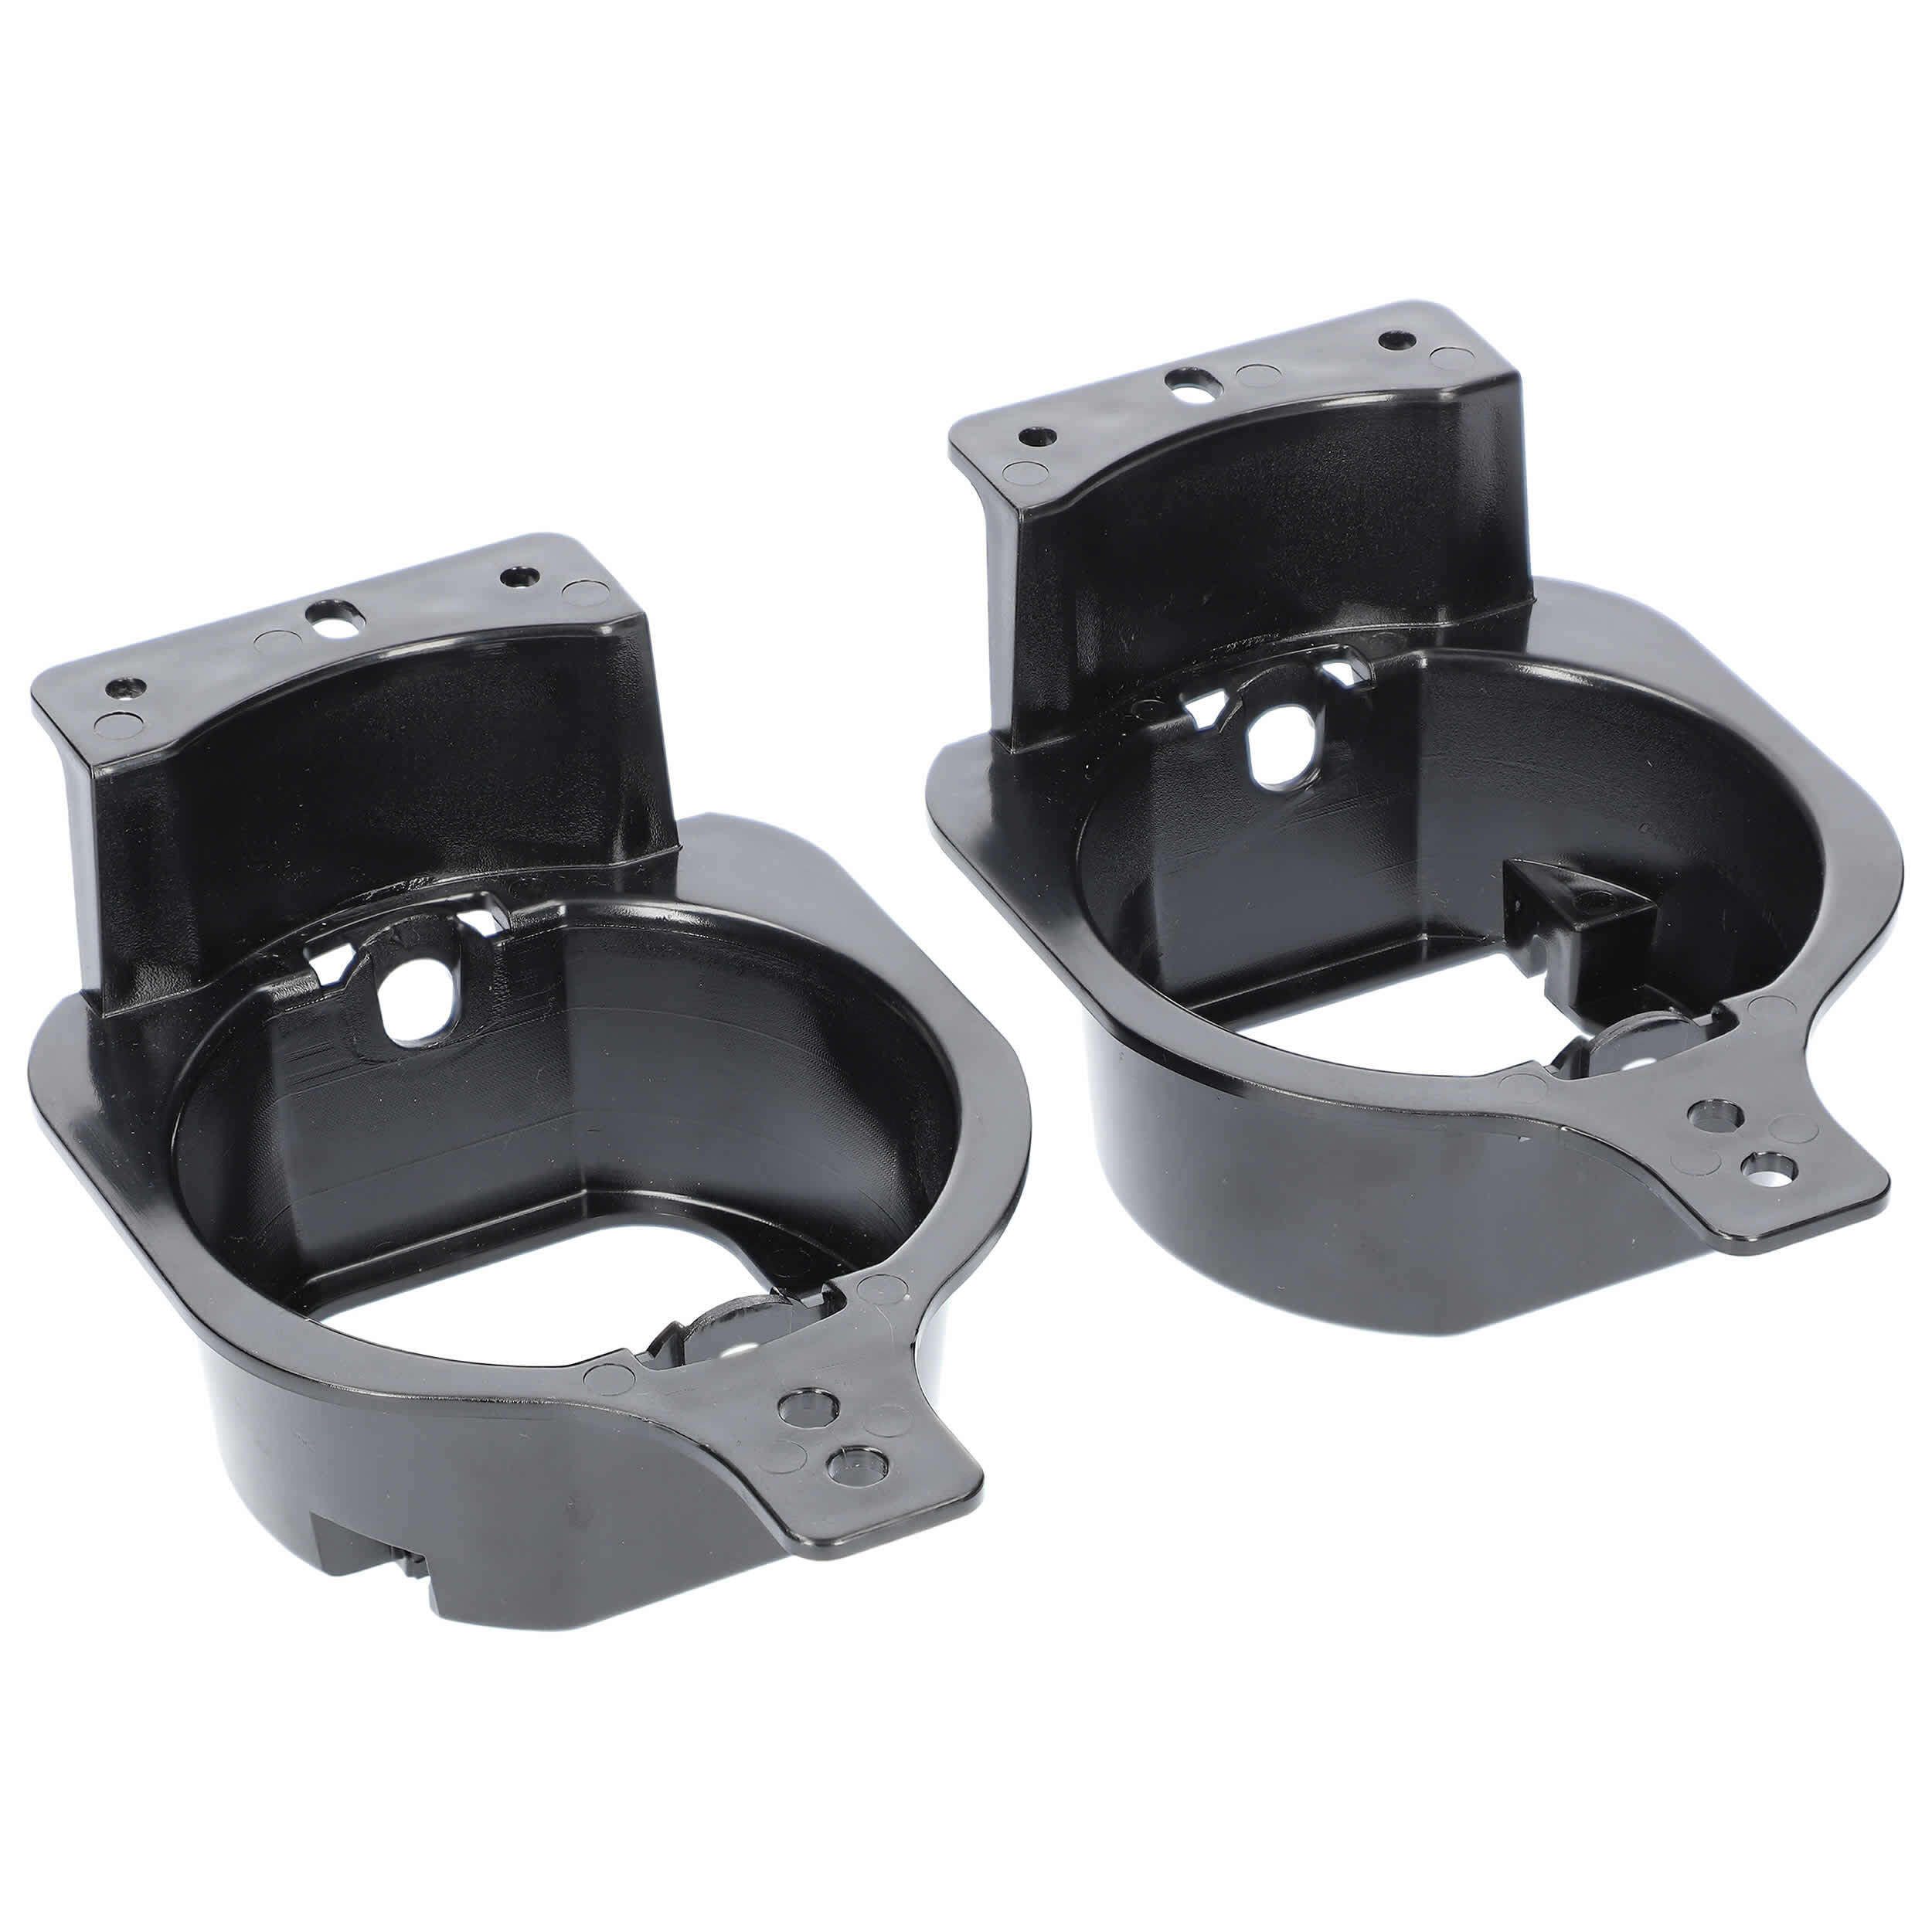 Fog Light Brackets - Wrangler JL Sport 2018-Up